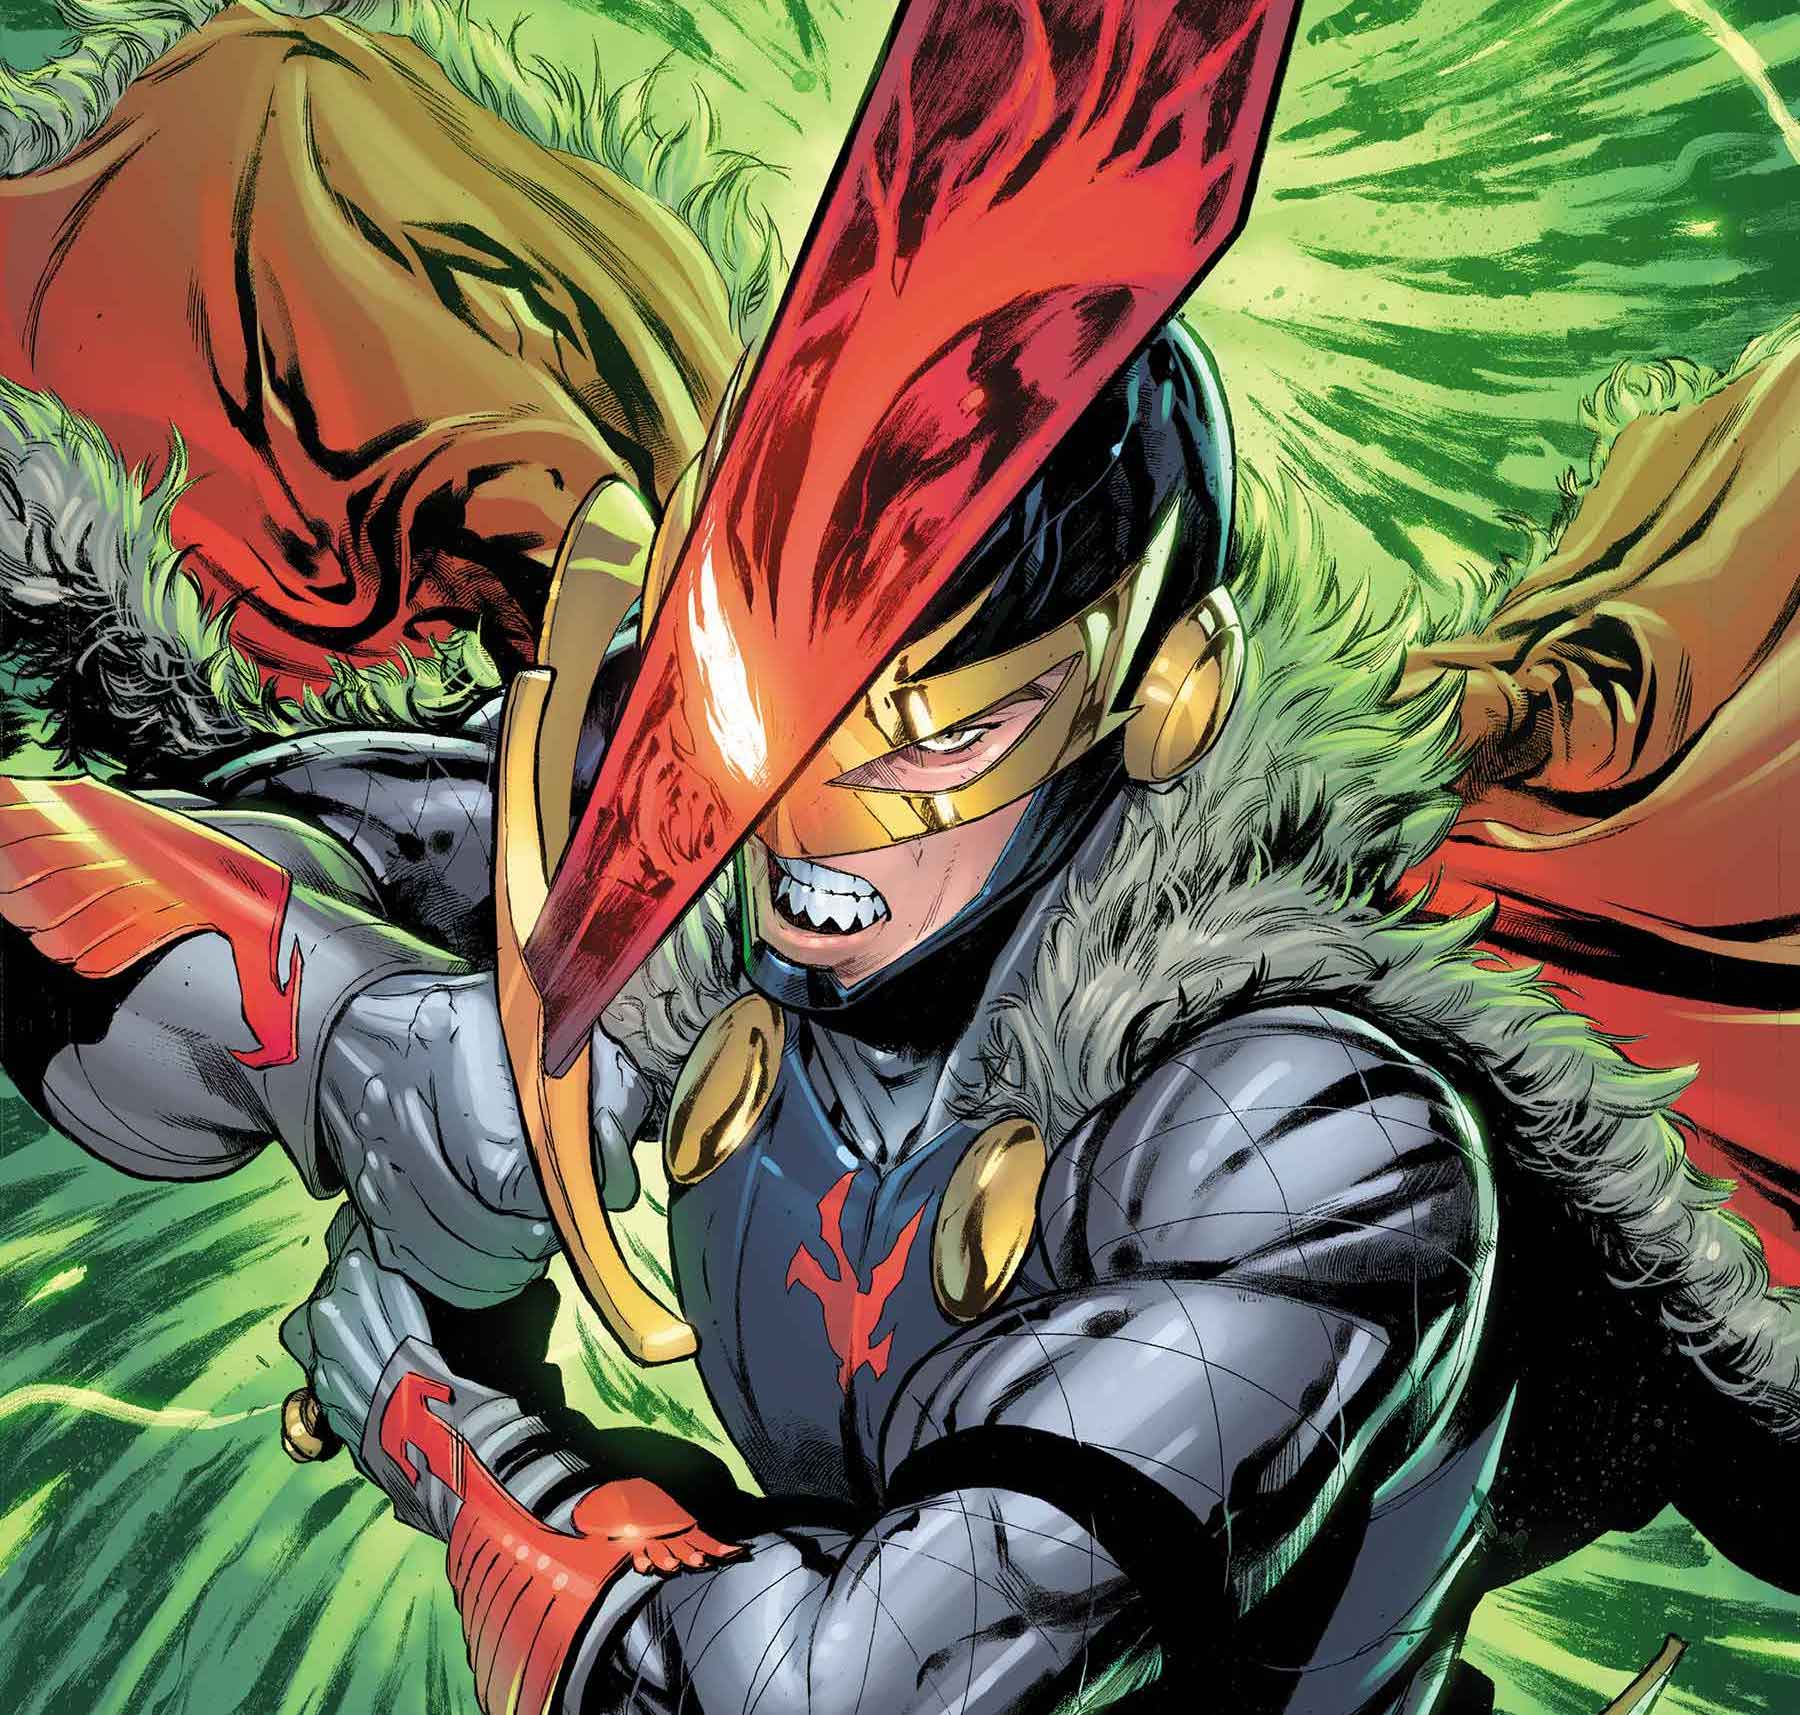 Marvel launching 5-part Black Knight series with Si Spurrier and artist Sergio Dávila